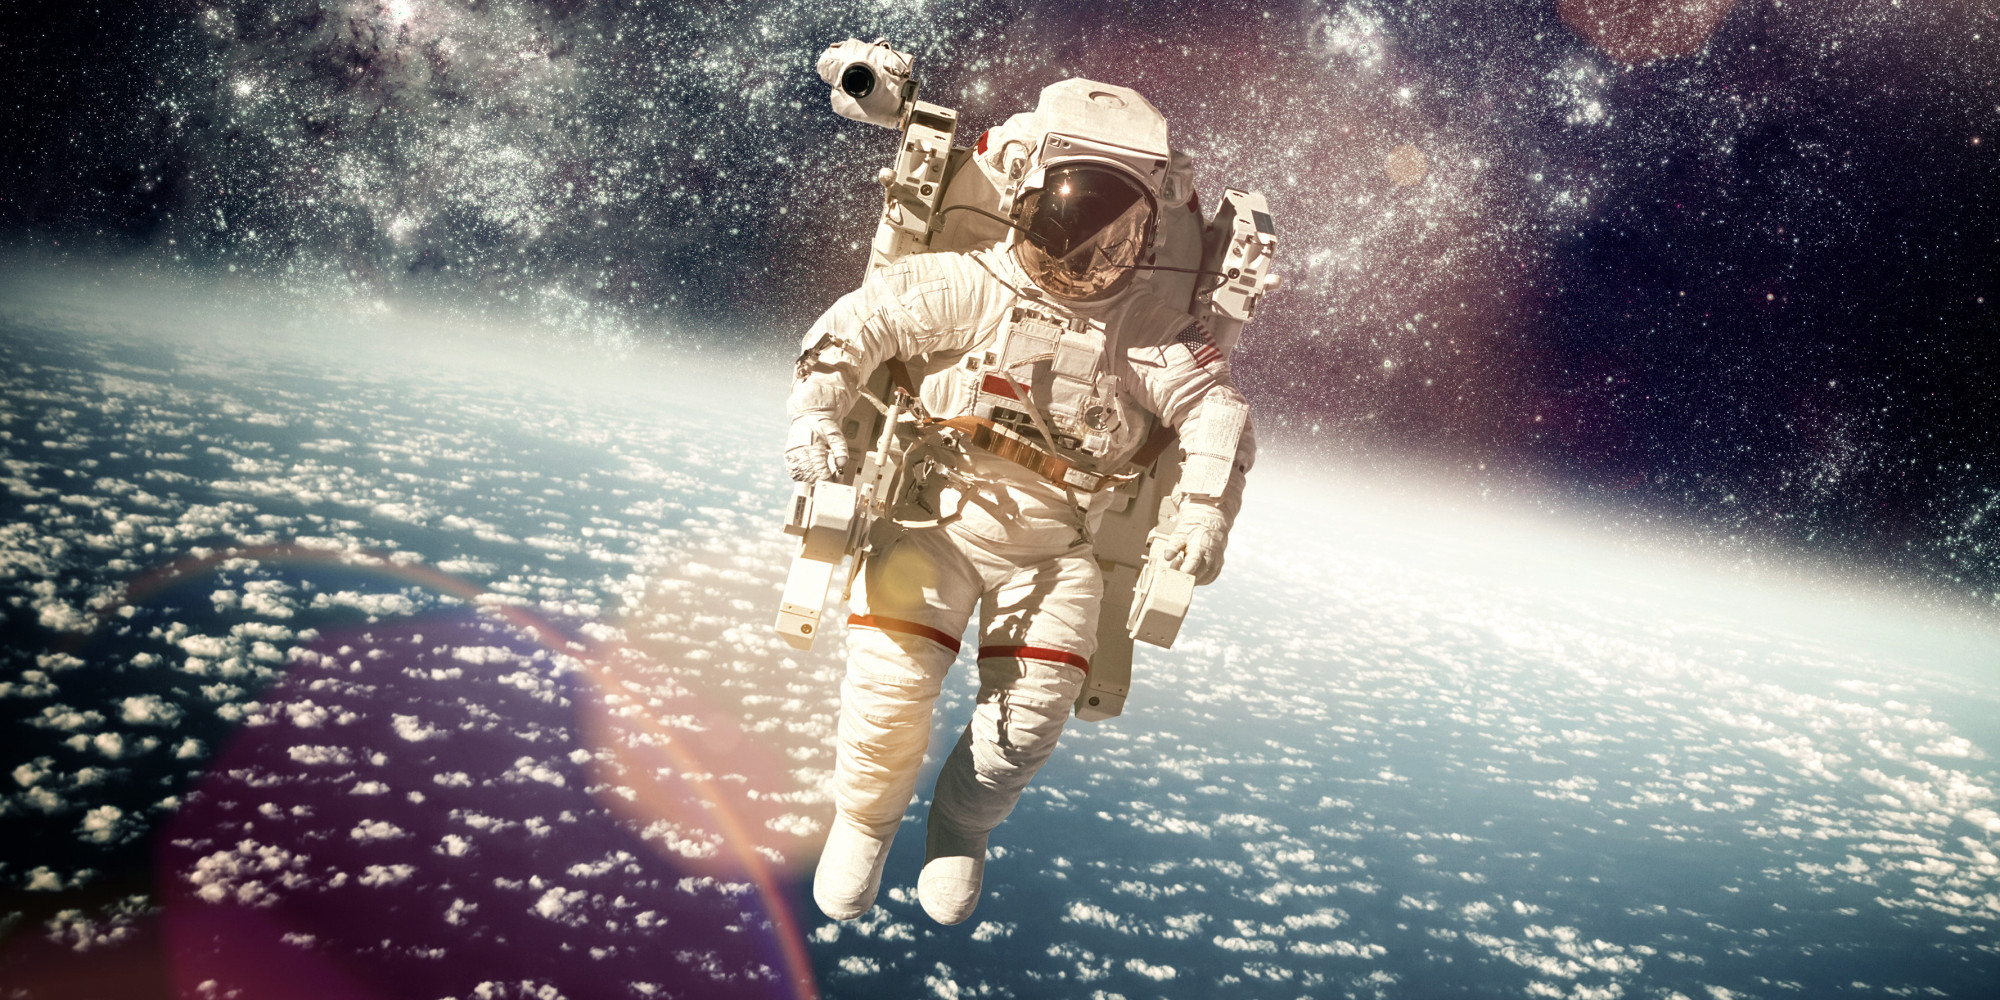 an astronaut in space will observe the sky as - photo #17